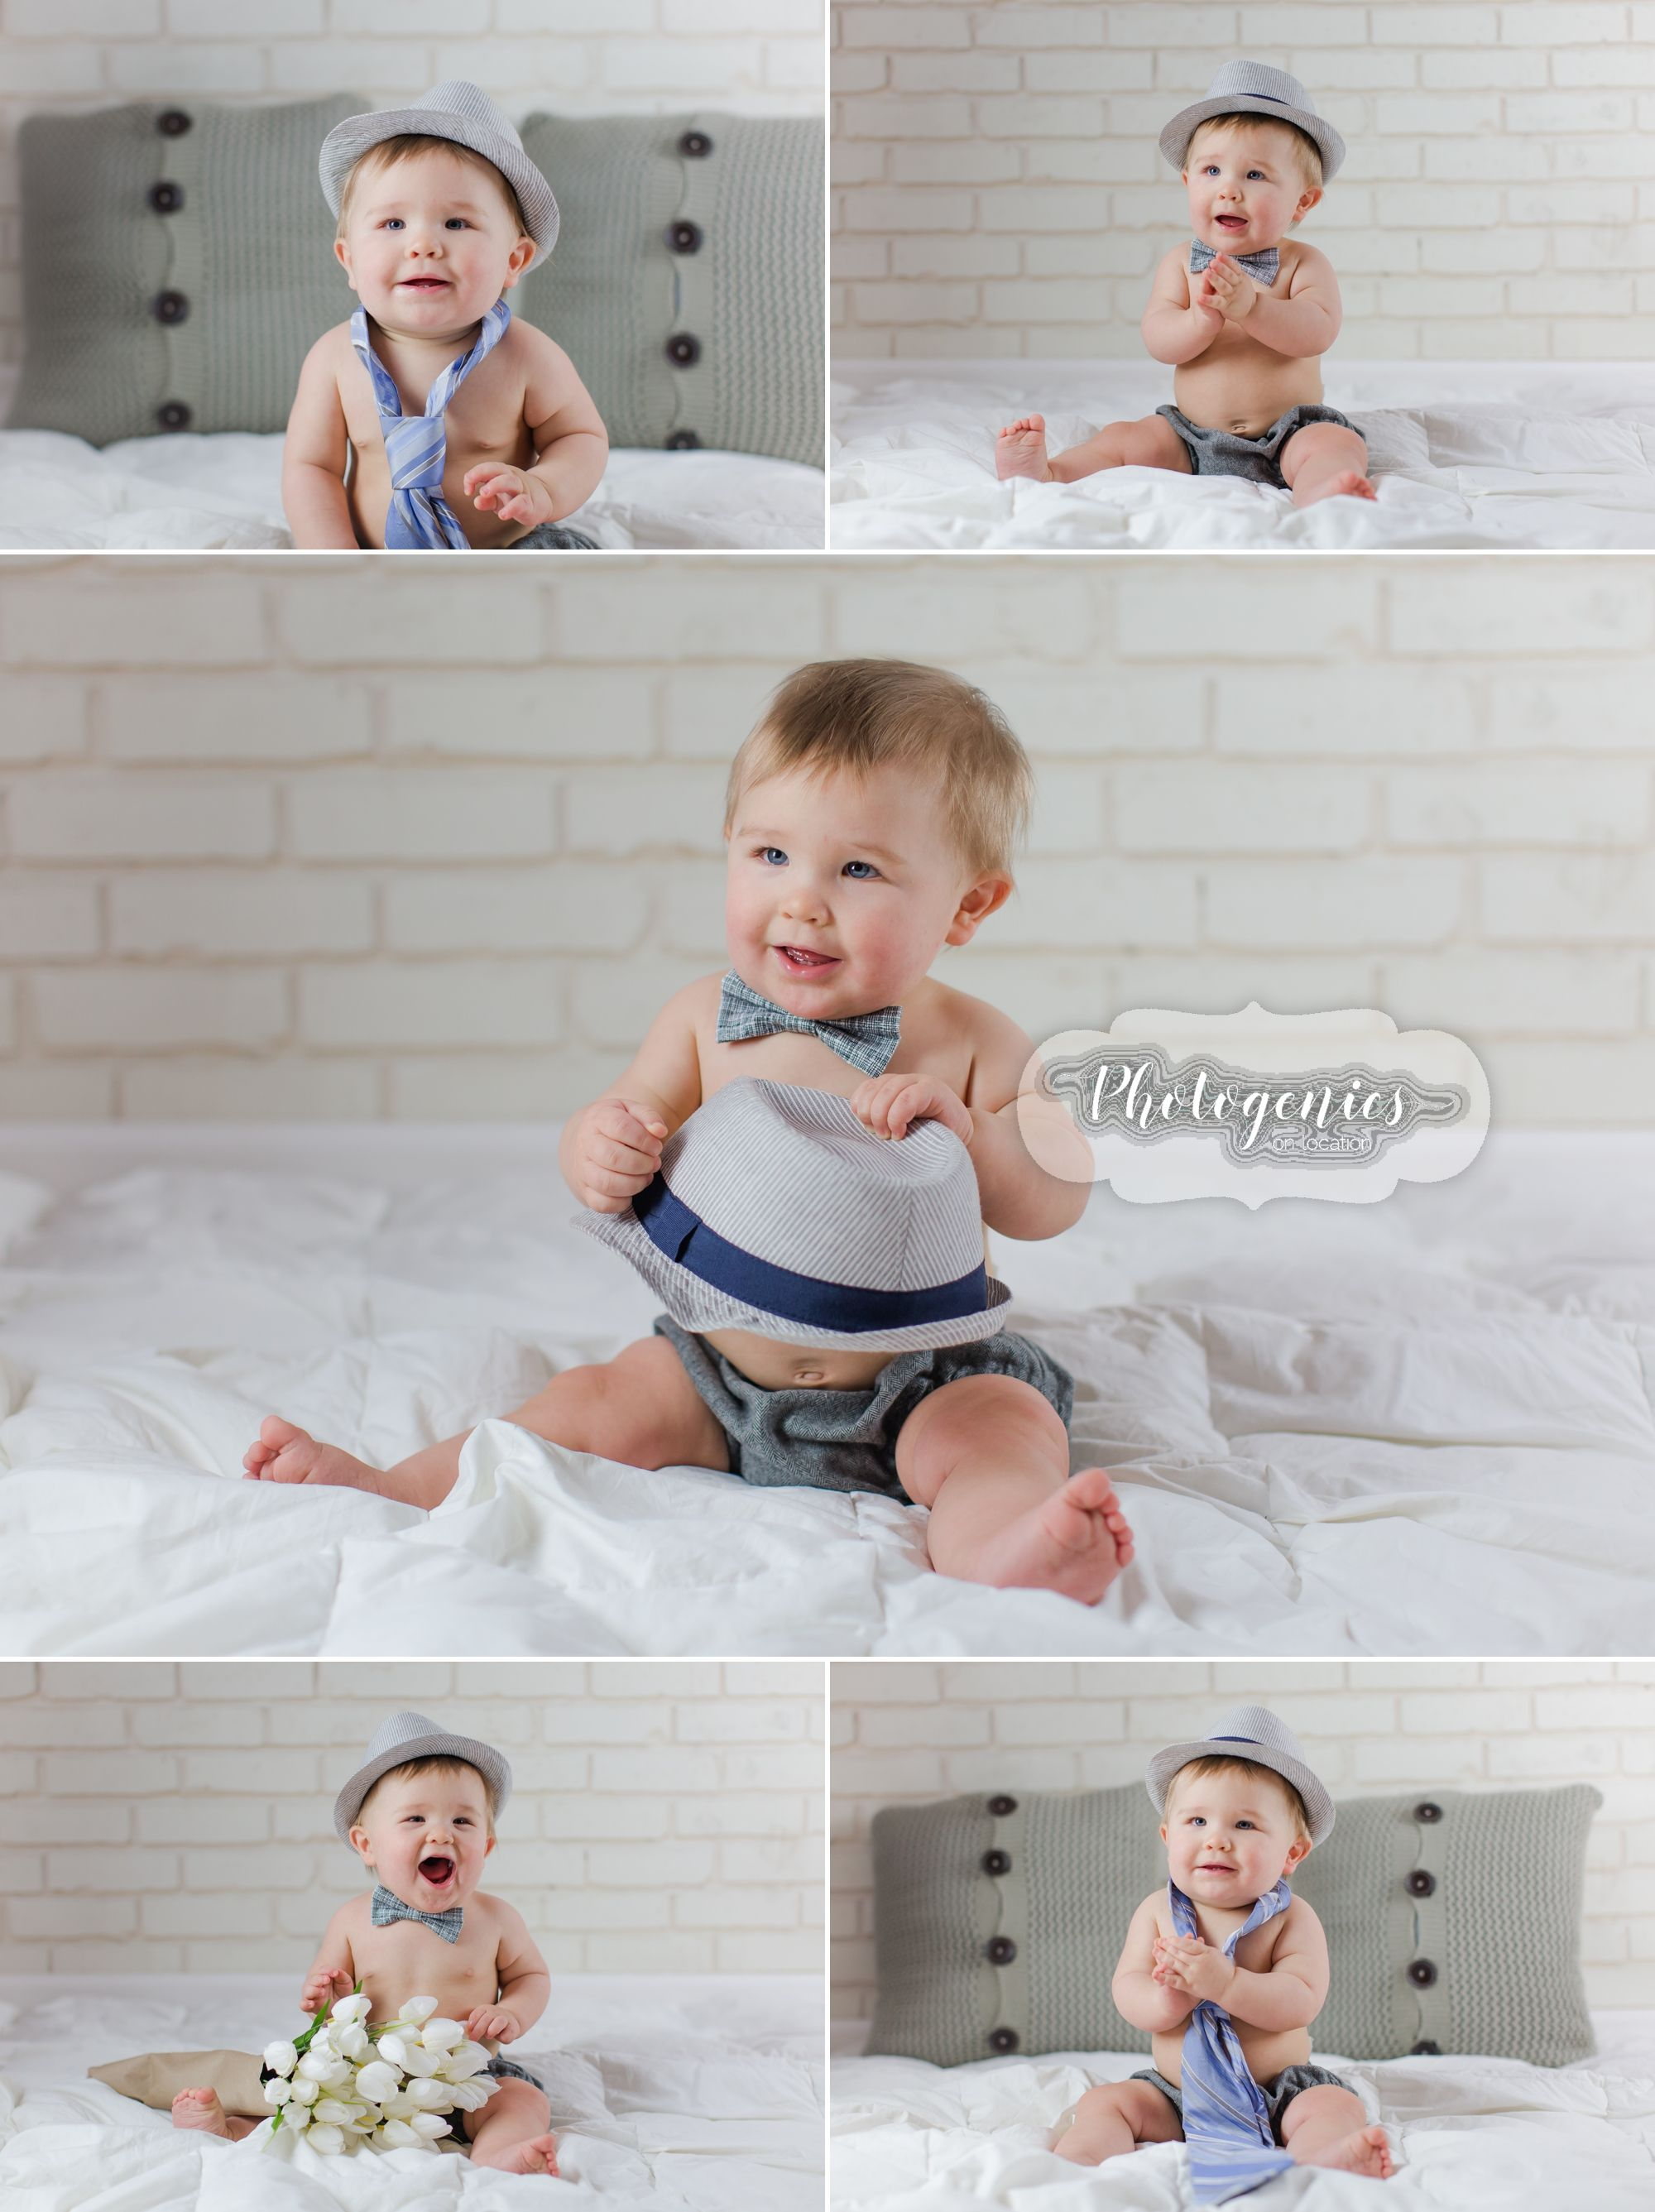 9 Month Photoshoot Ideas : month, photoshoot, ideas, Photogenics, Location, Month, Picture, Ideas,, Ideas, Photoshoot